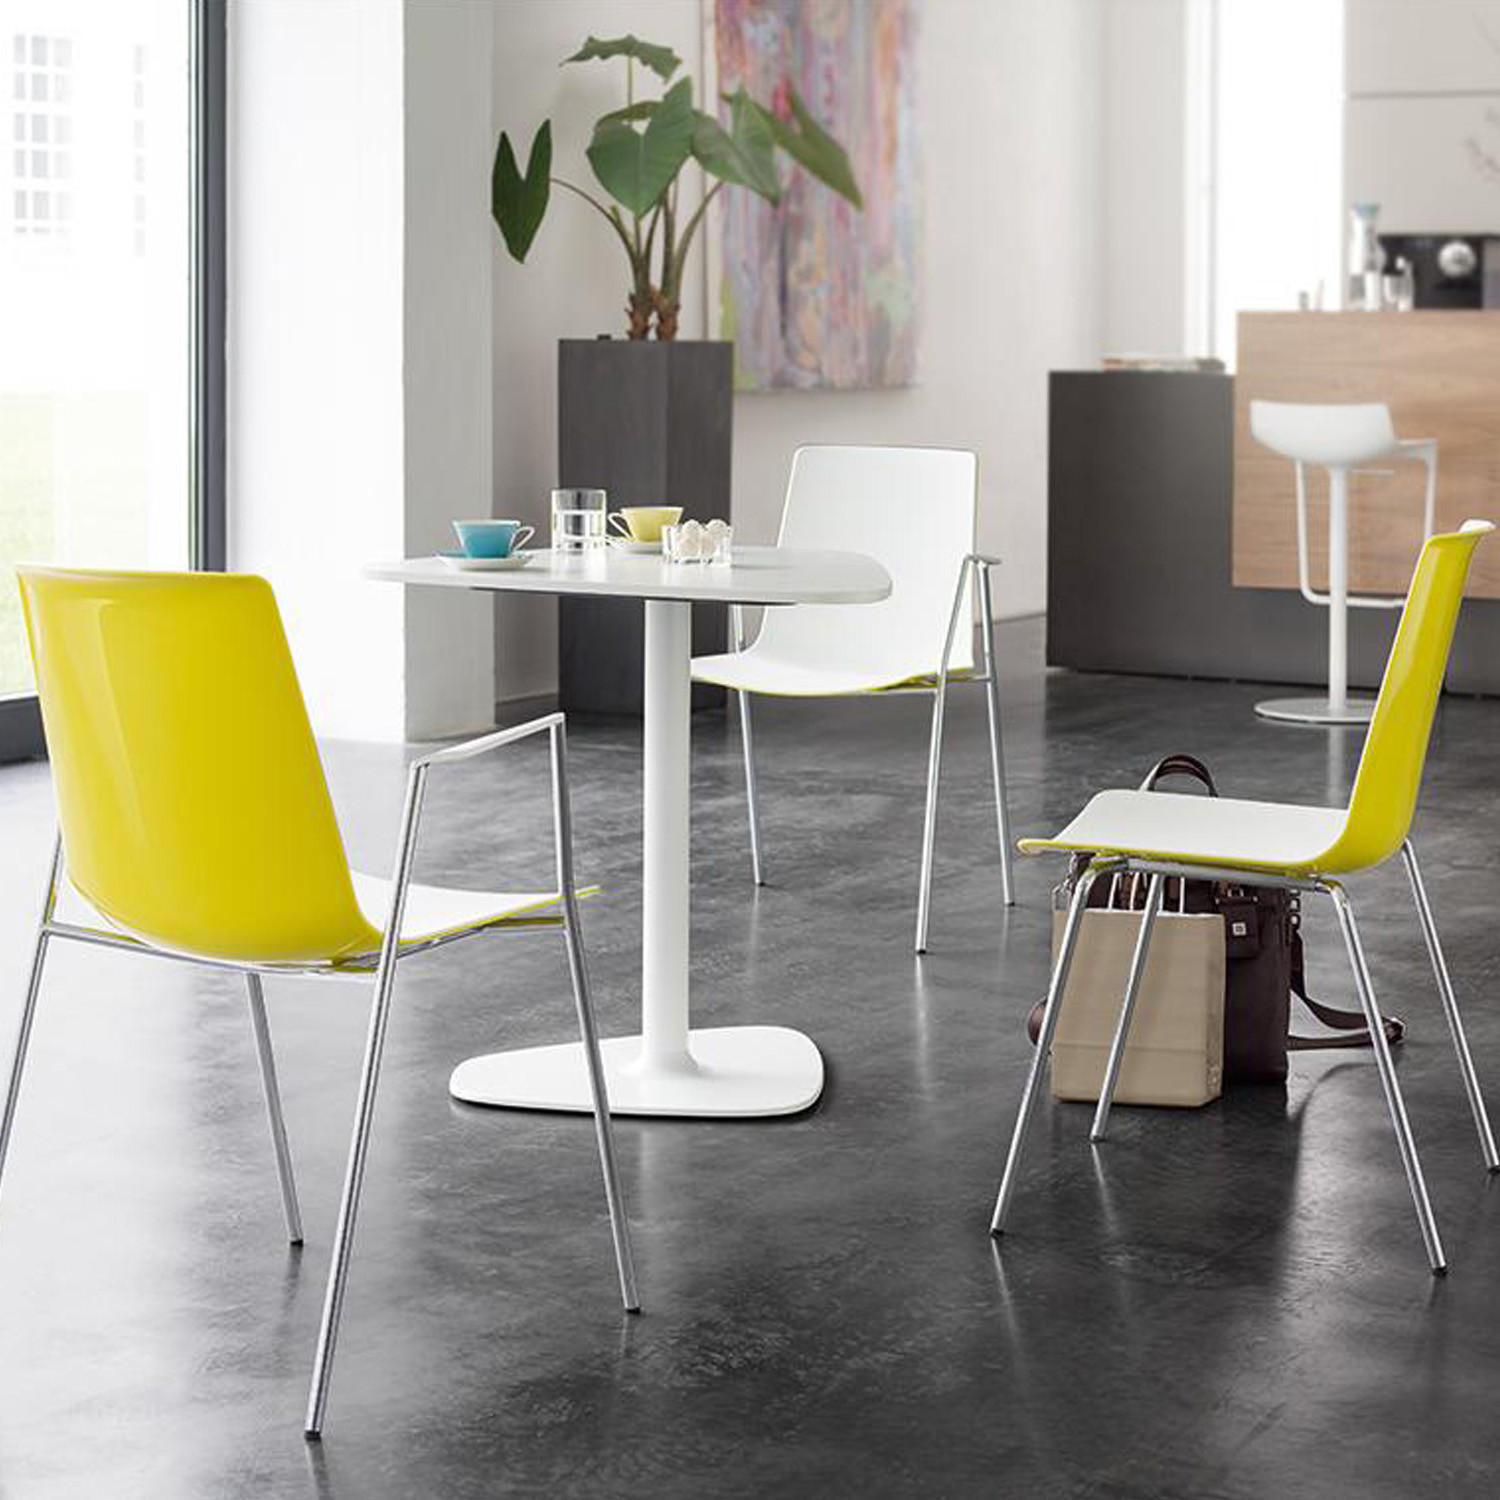 Nooi Cafe Chairs